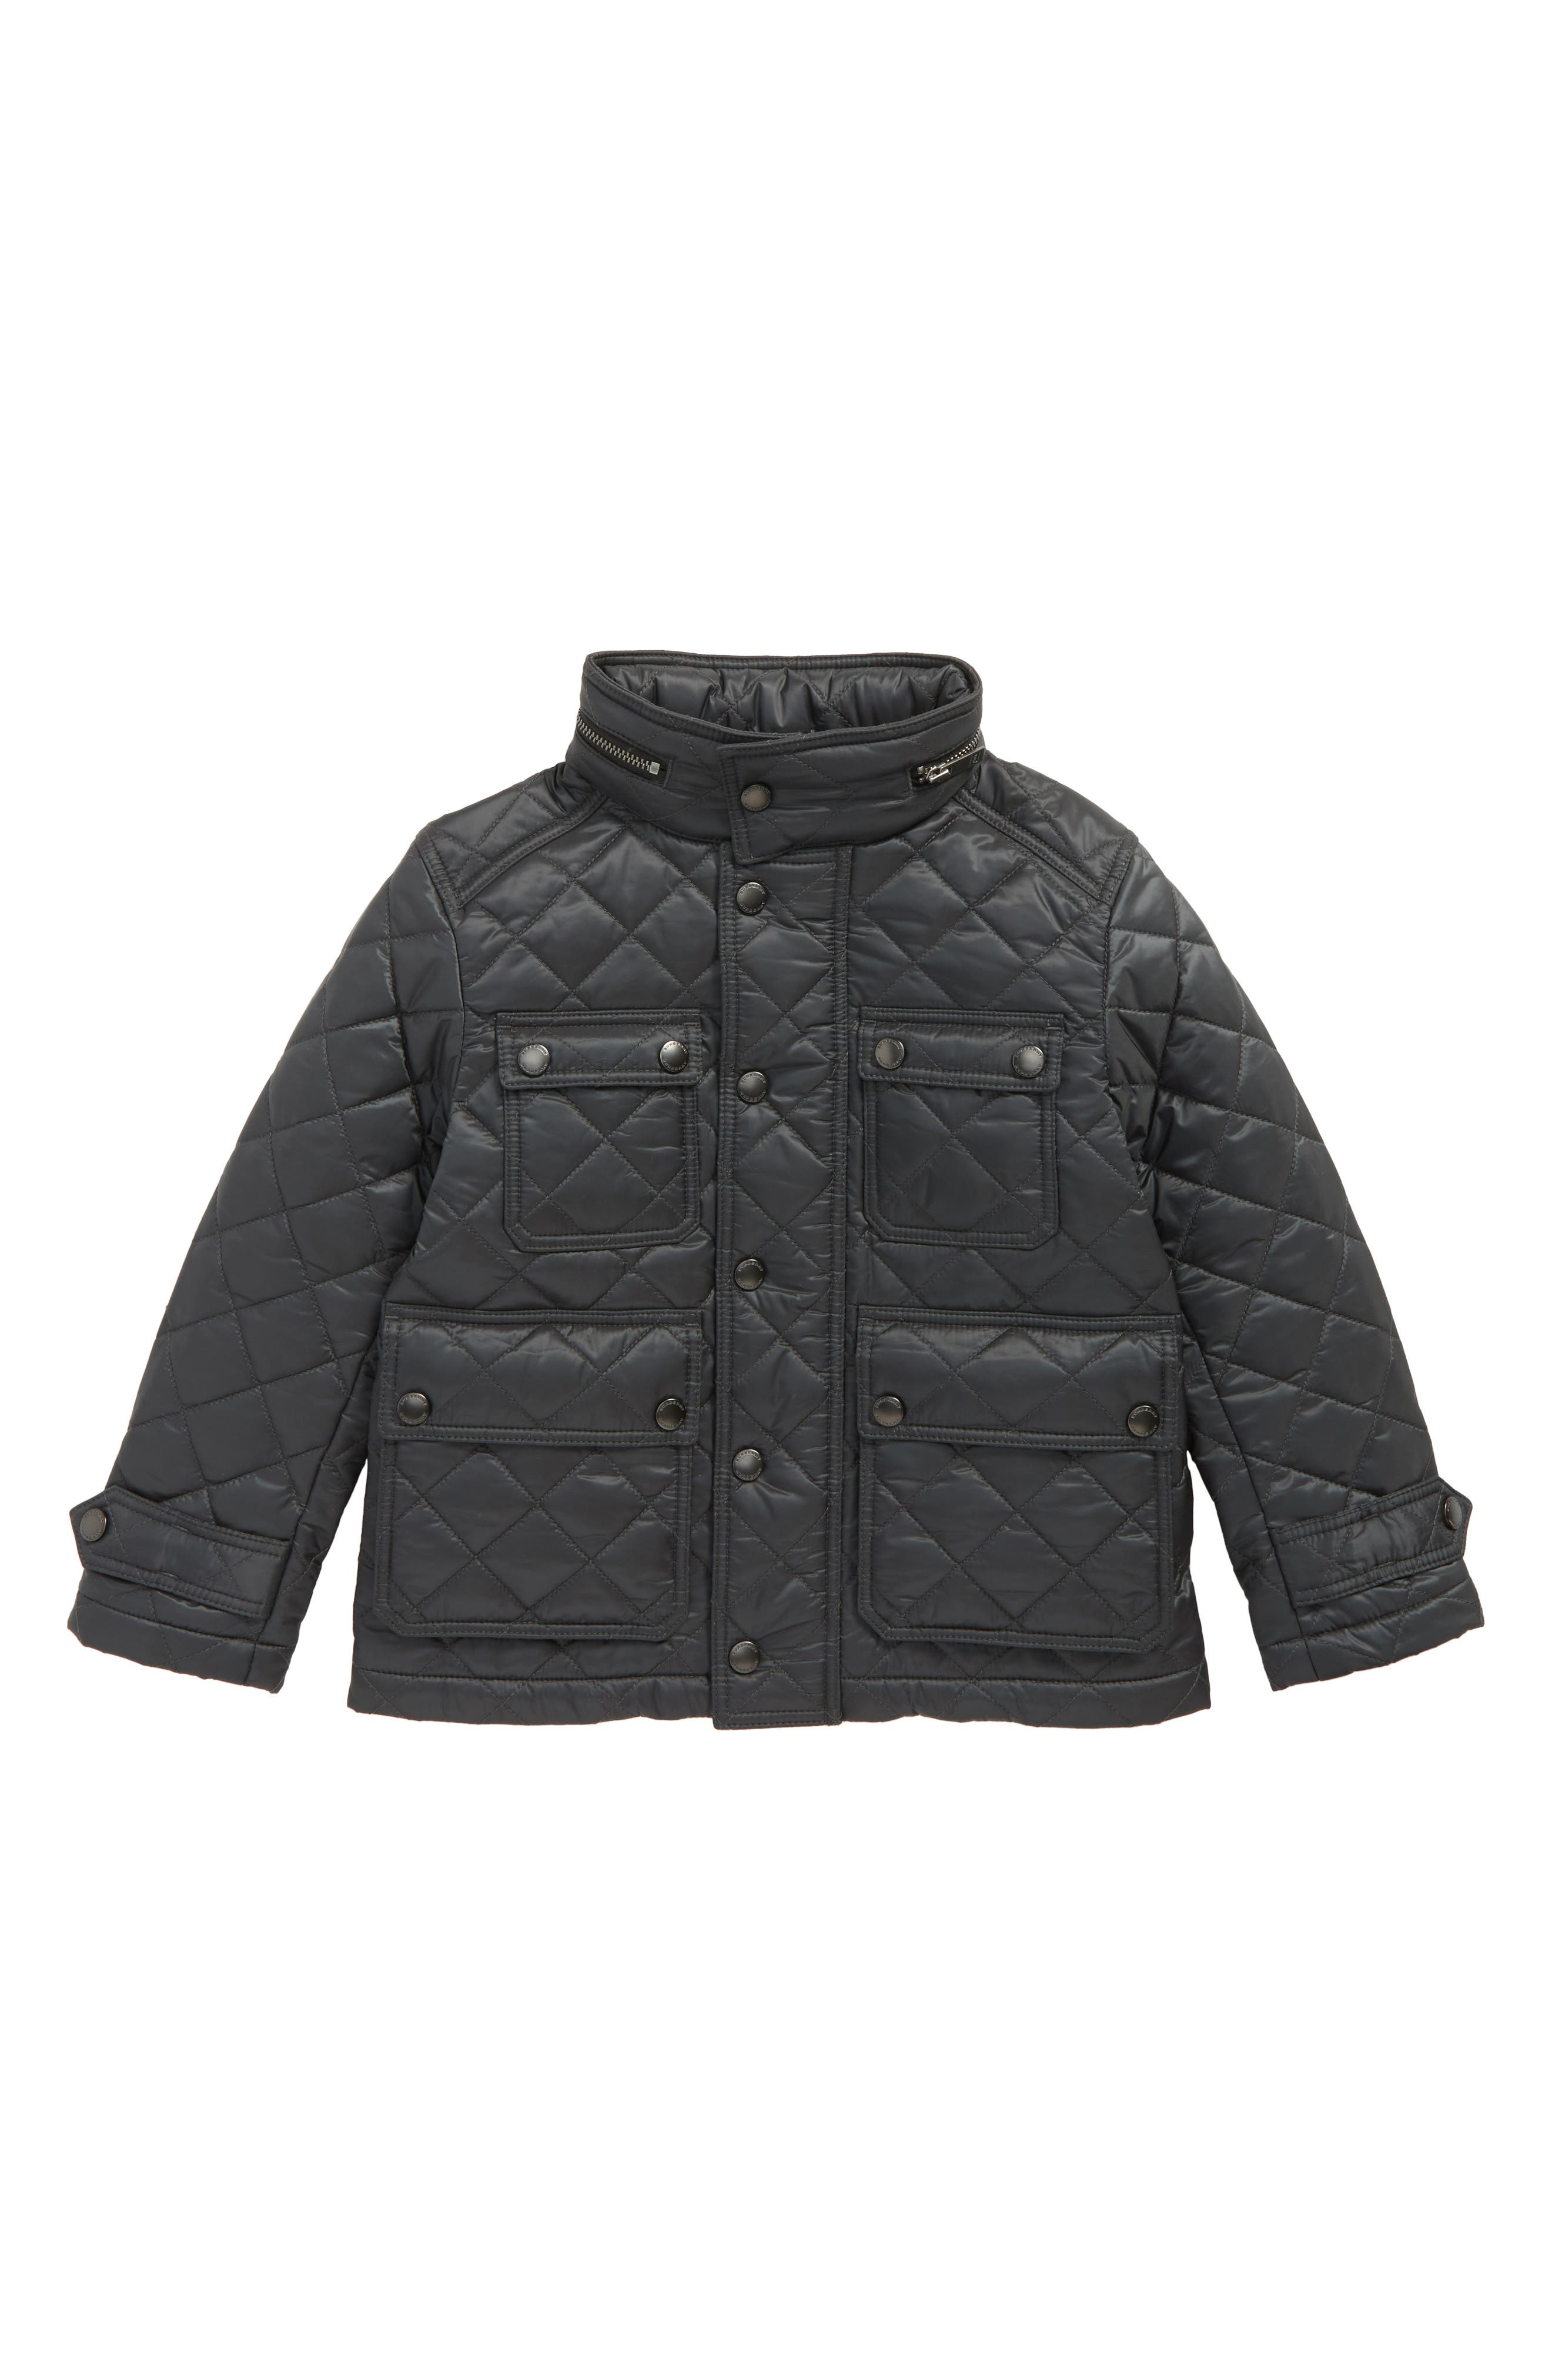 Halesworth Quilted Field Jacket,                             Main thumbnail 1, color,                             029